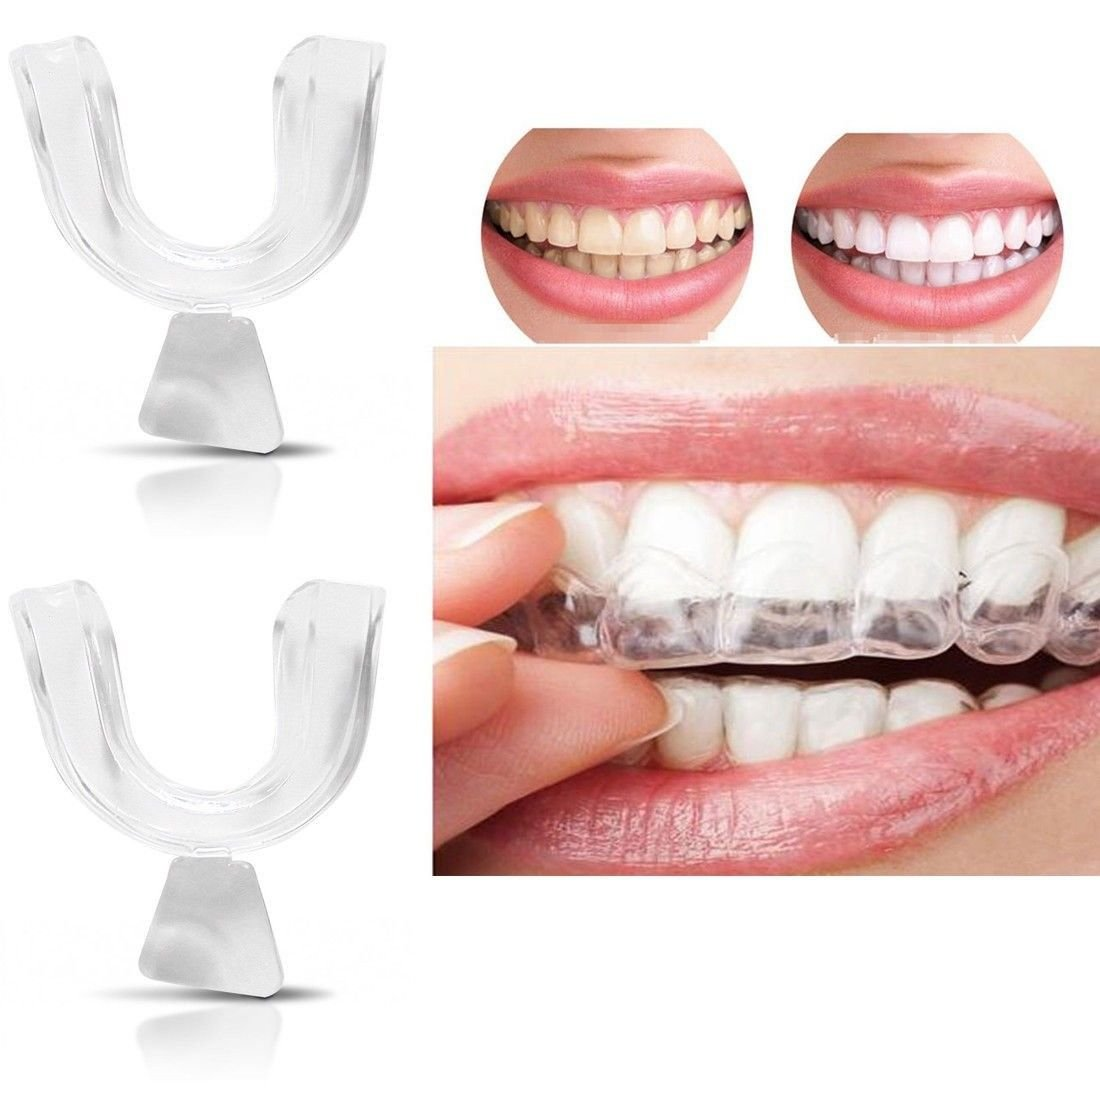 Bhbuy 4pcs Silicone Night Mouth Guard for Teeth Clenching Grinding Dental  Bite Sleep Aid.